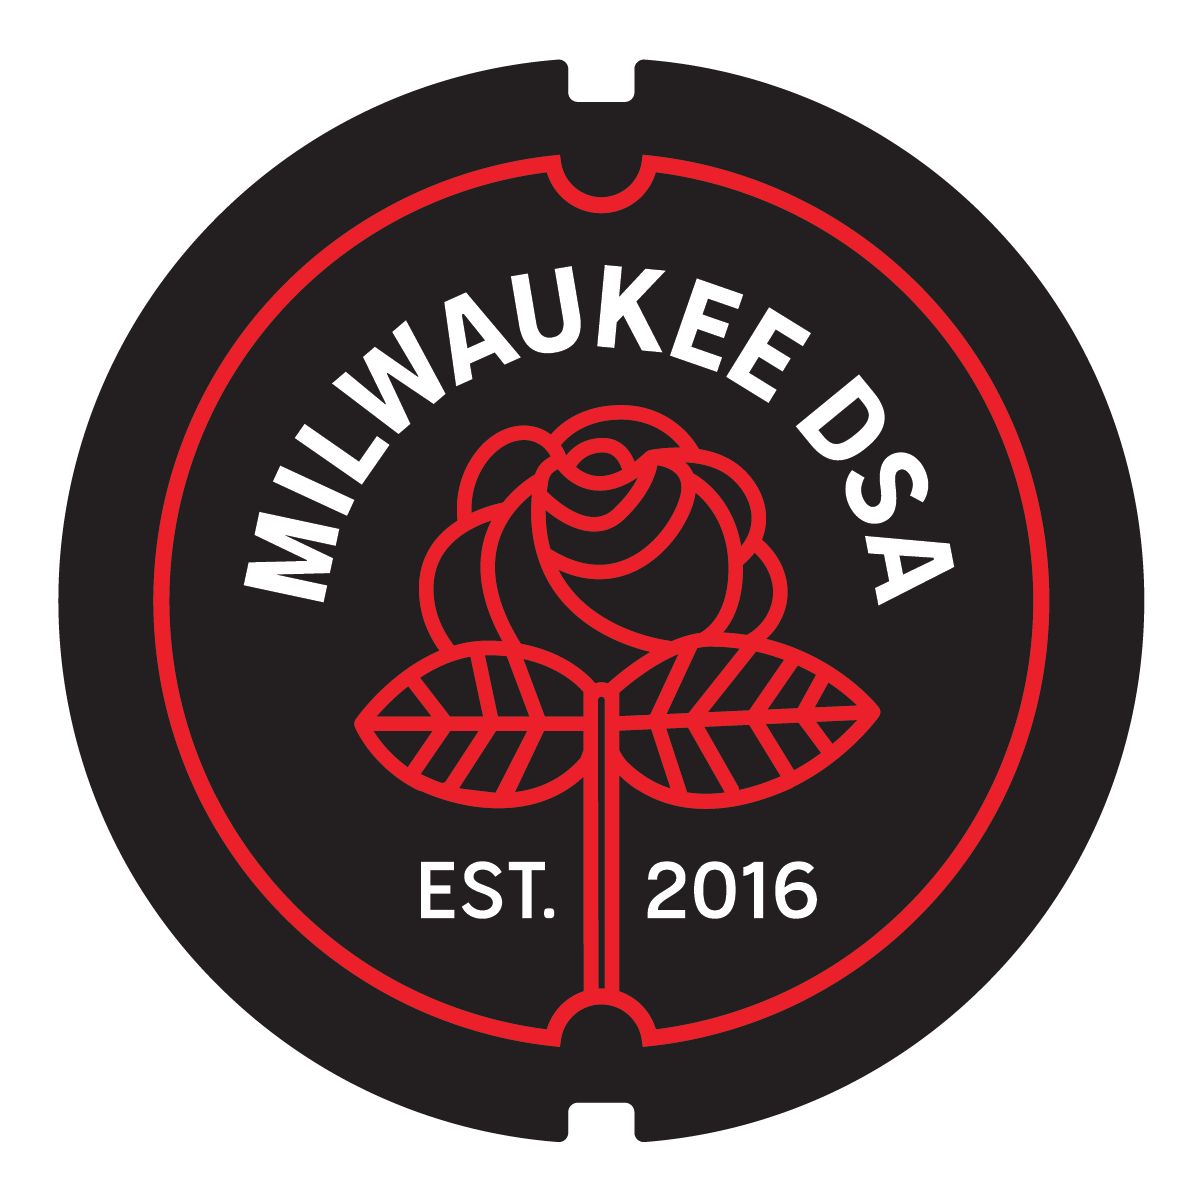 Milwaukee DSA – Democratic Socialists of America